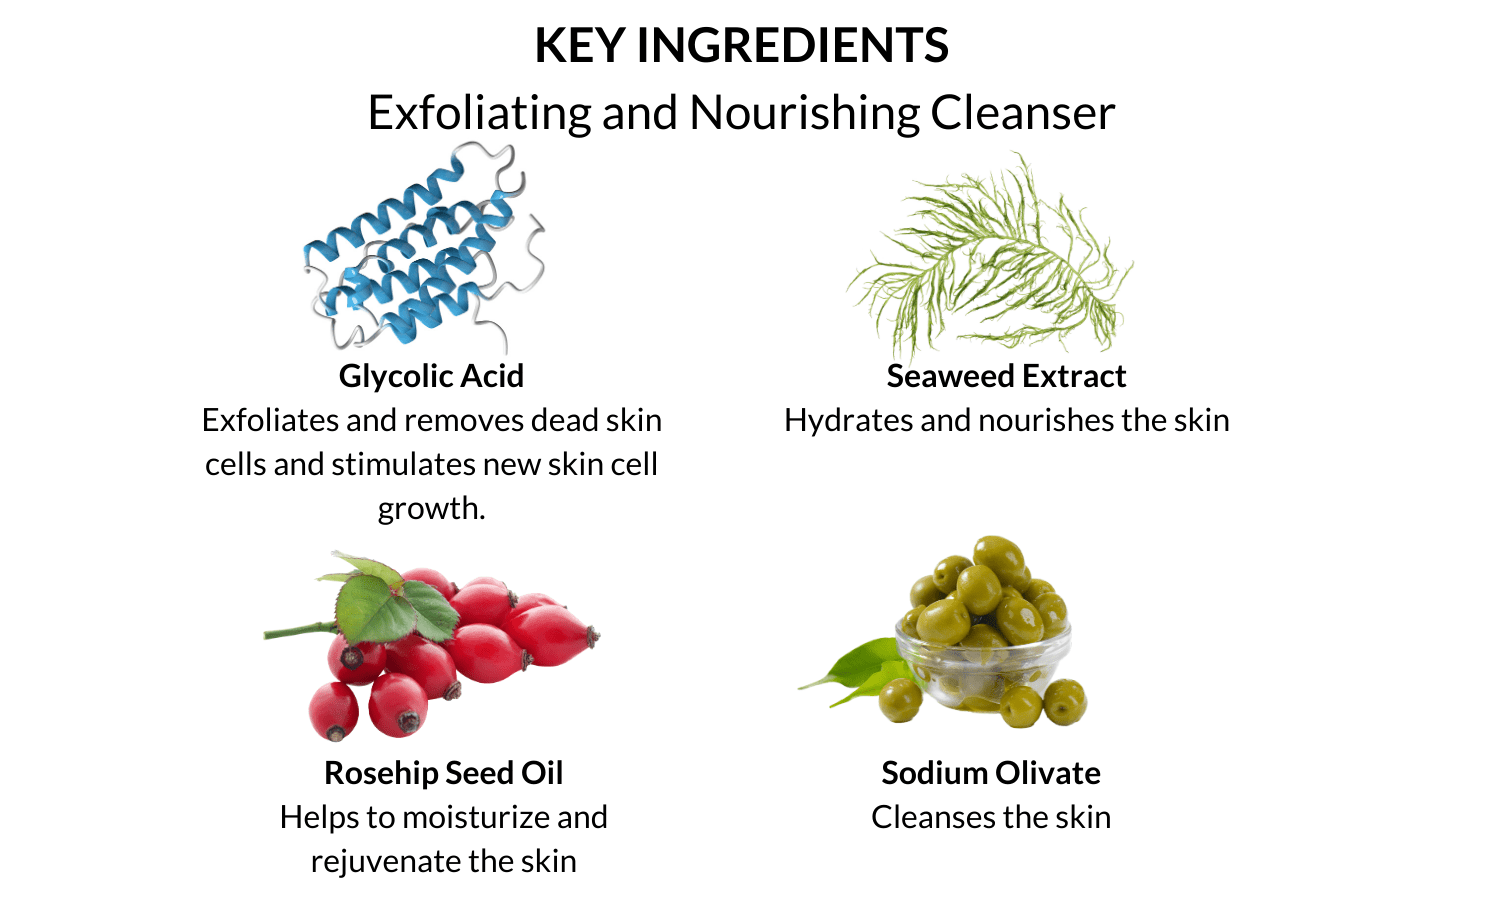 Squeaky Clean Bundle - Brightening Cleanser and Exfoliating & Nourishing Cleanser